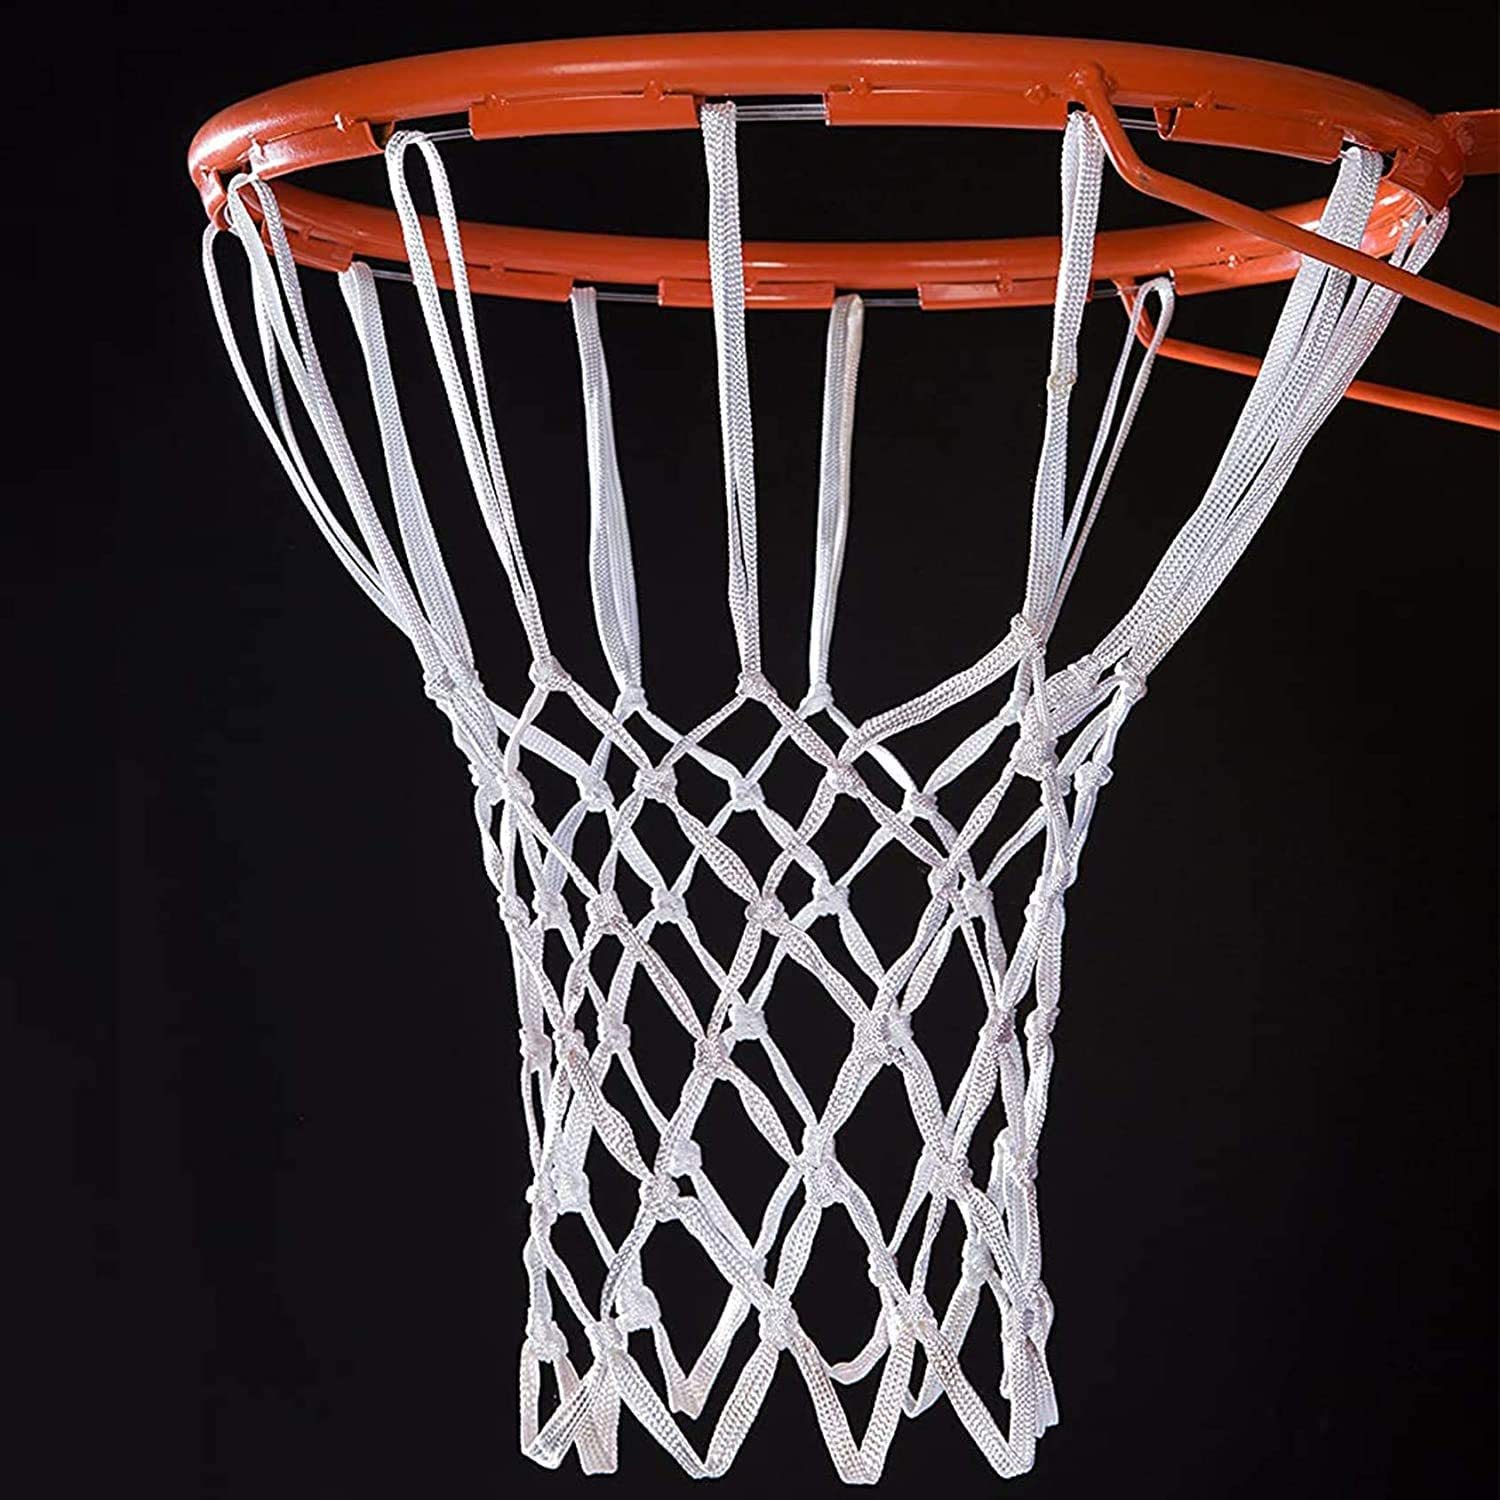 Rqueza Basketball Net Heavy Duty Outdoor All Weather Replacement Basketball Backboard Accessories for Standard Hoop